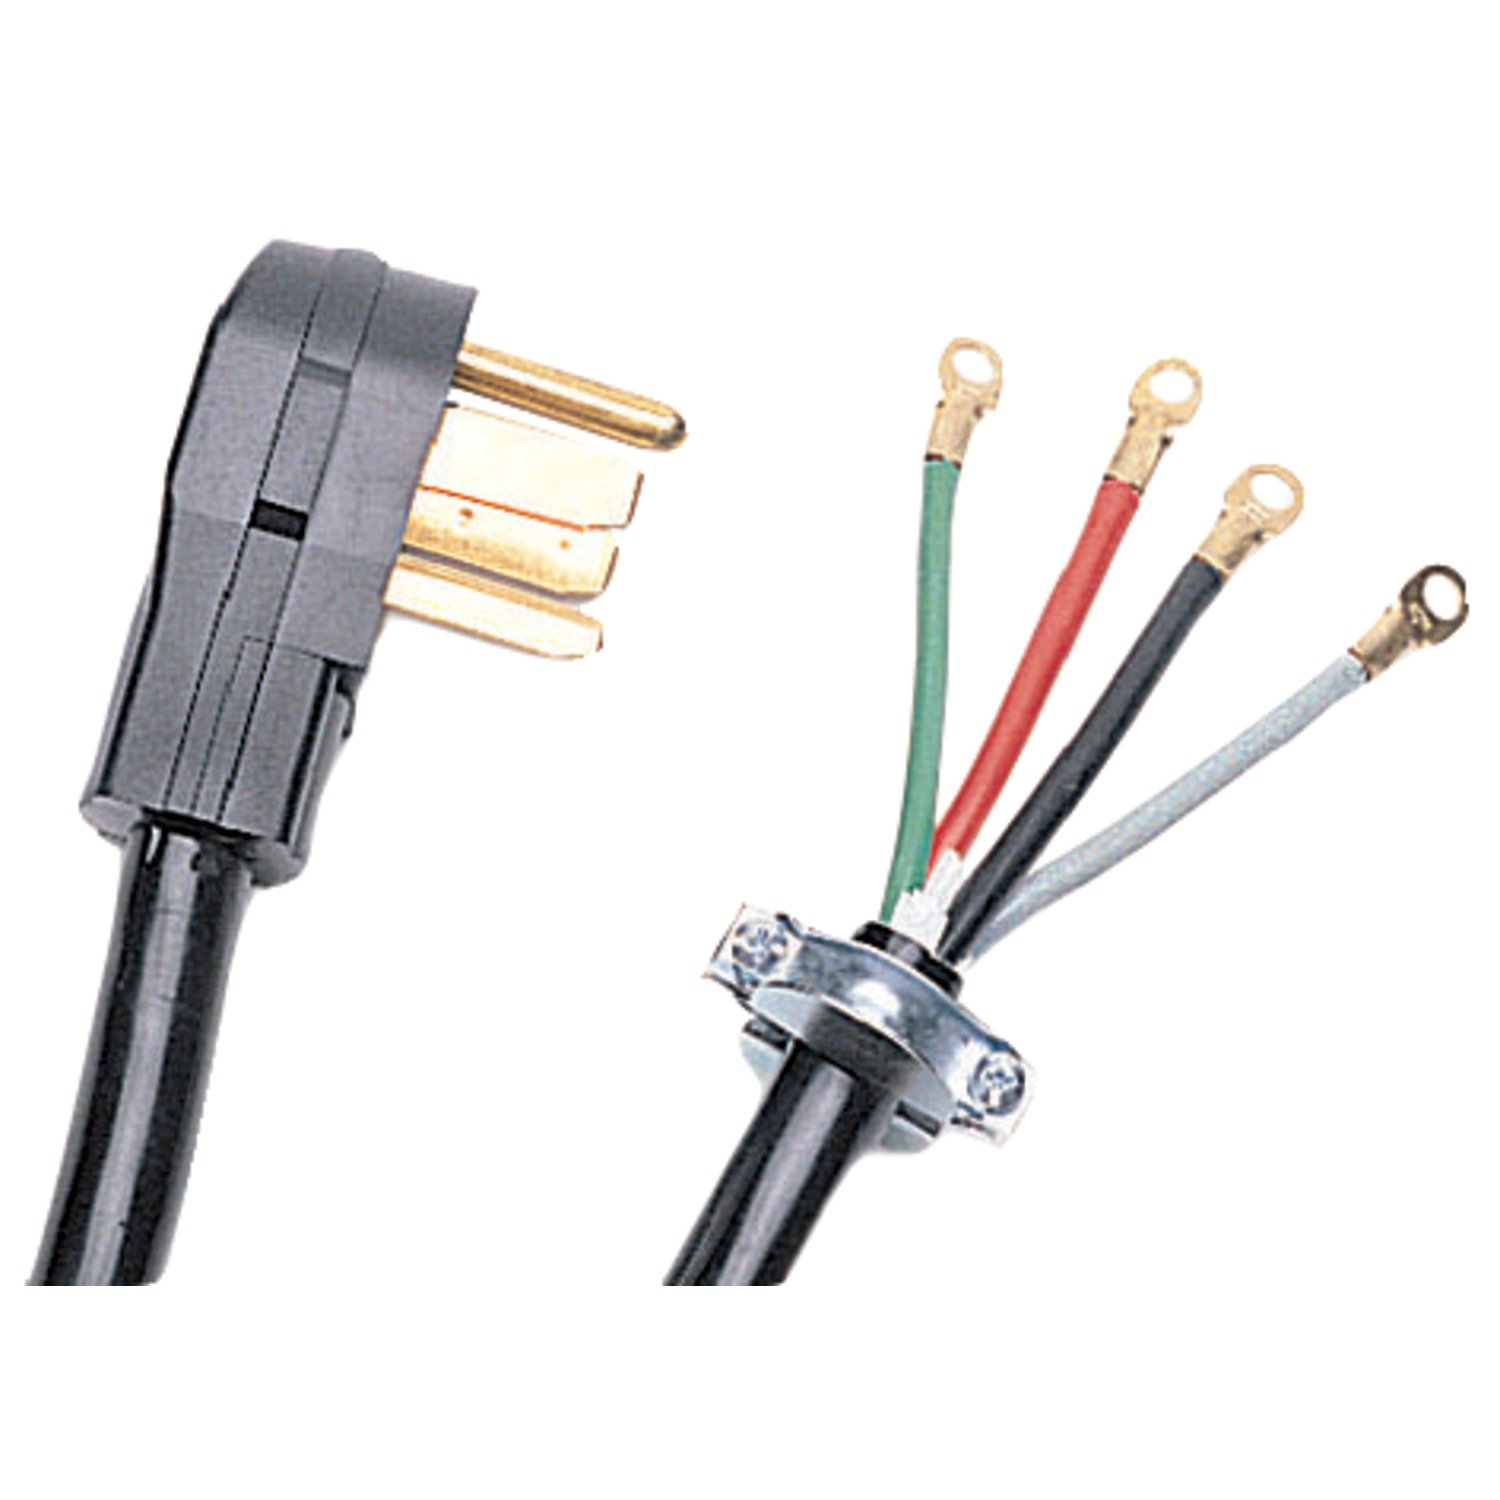 617jsJUbnvL._SL1500_ 3 prong outlet wiring diagram 3 prong oven plug \u2022 free wiring  at alyssarenee.co